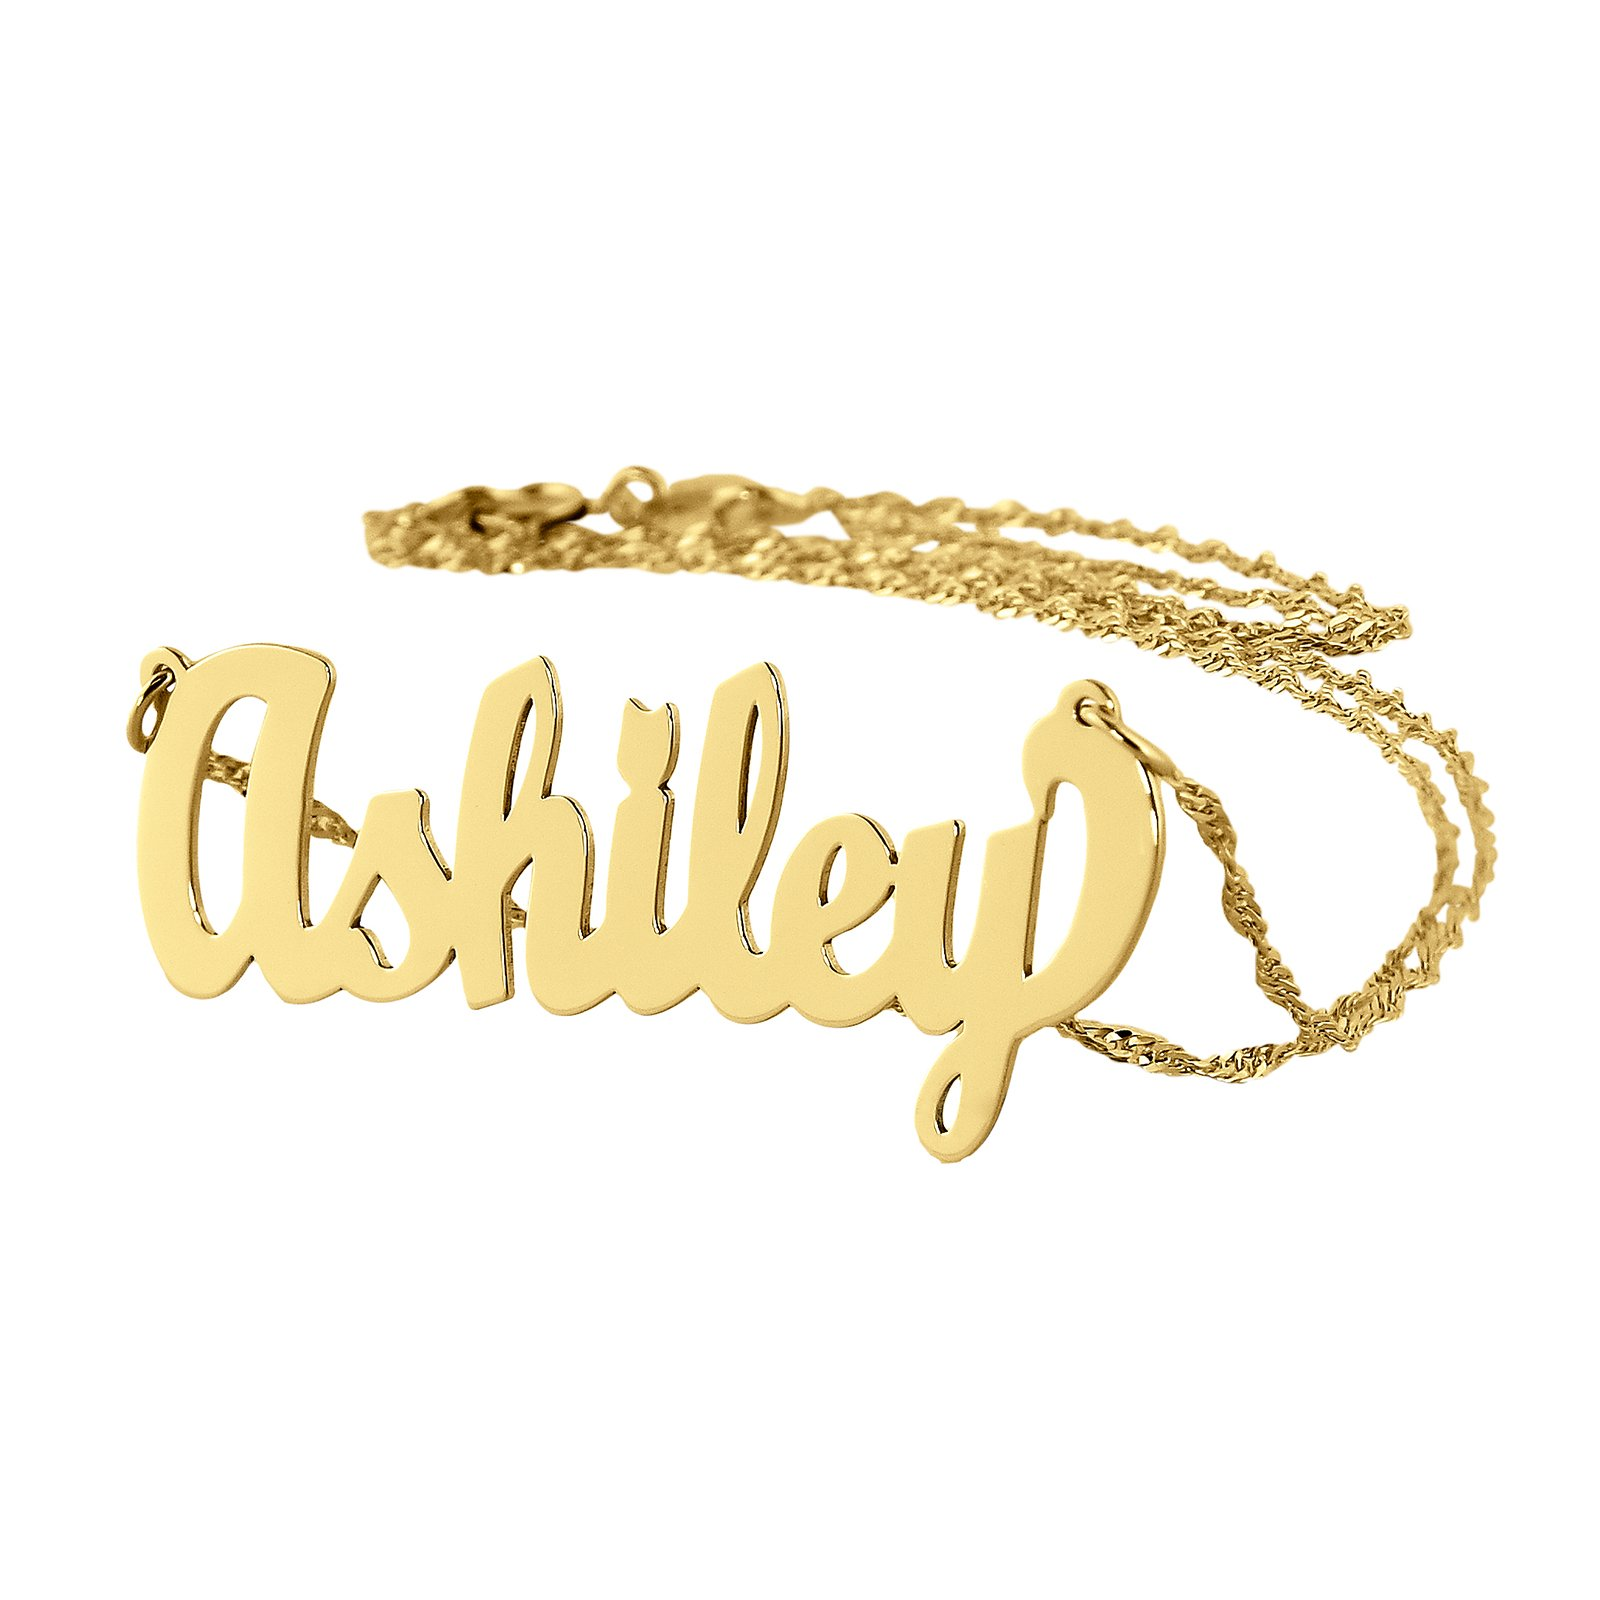 Dainty Name Necklace 10k Gold Personalized Pendant Chain 1.25 Inch Charm (20)